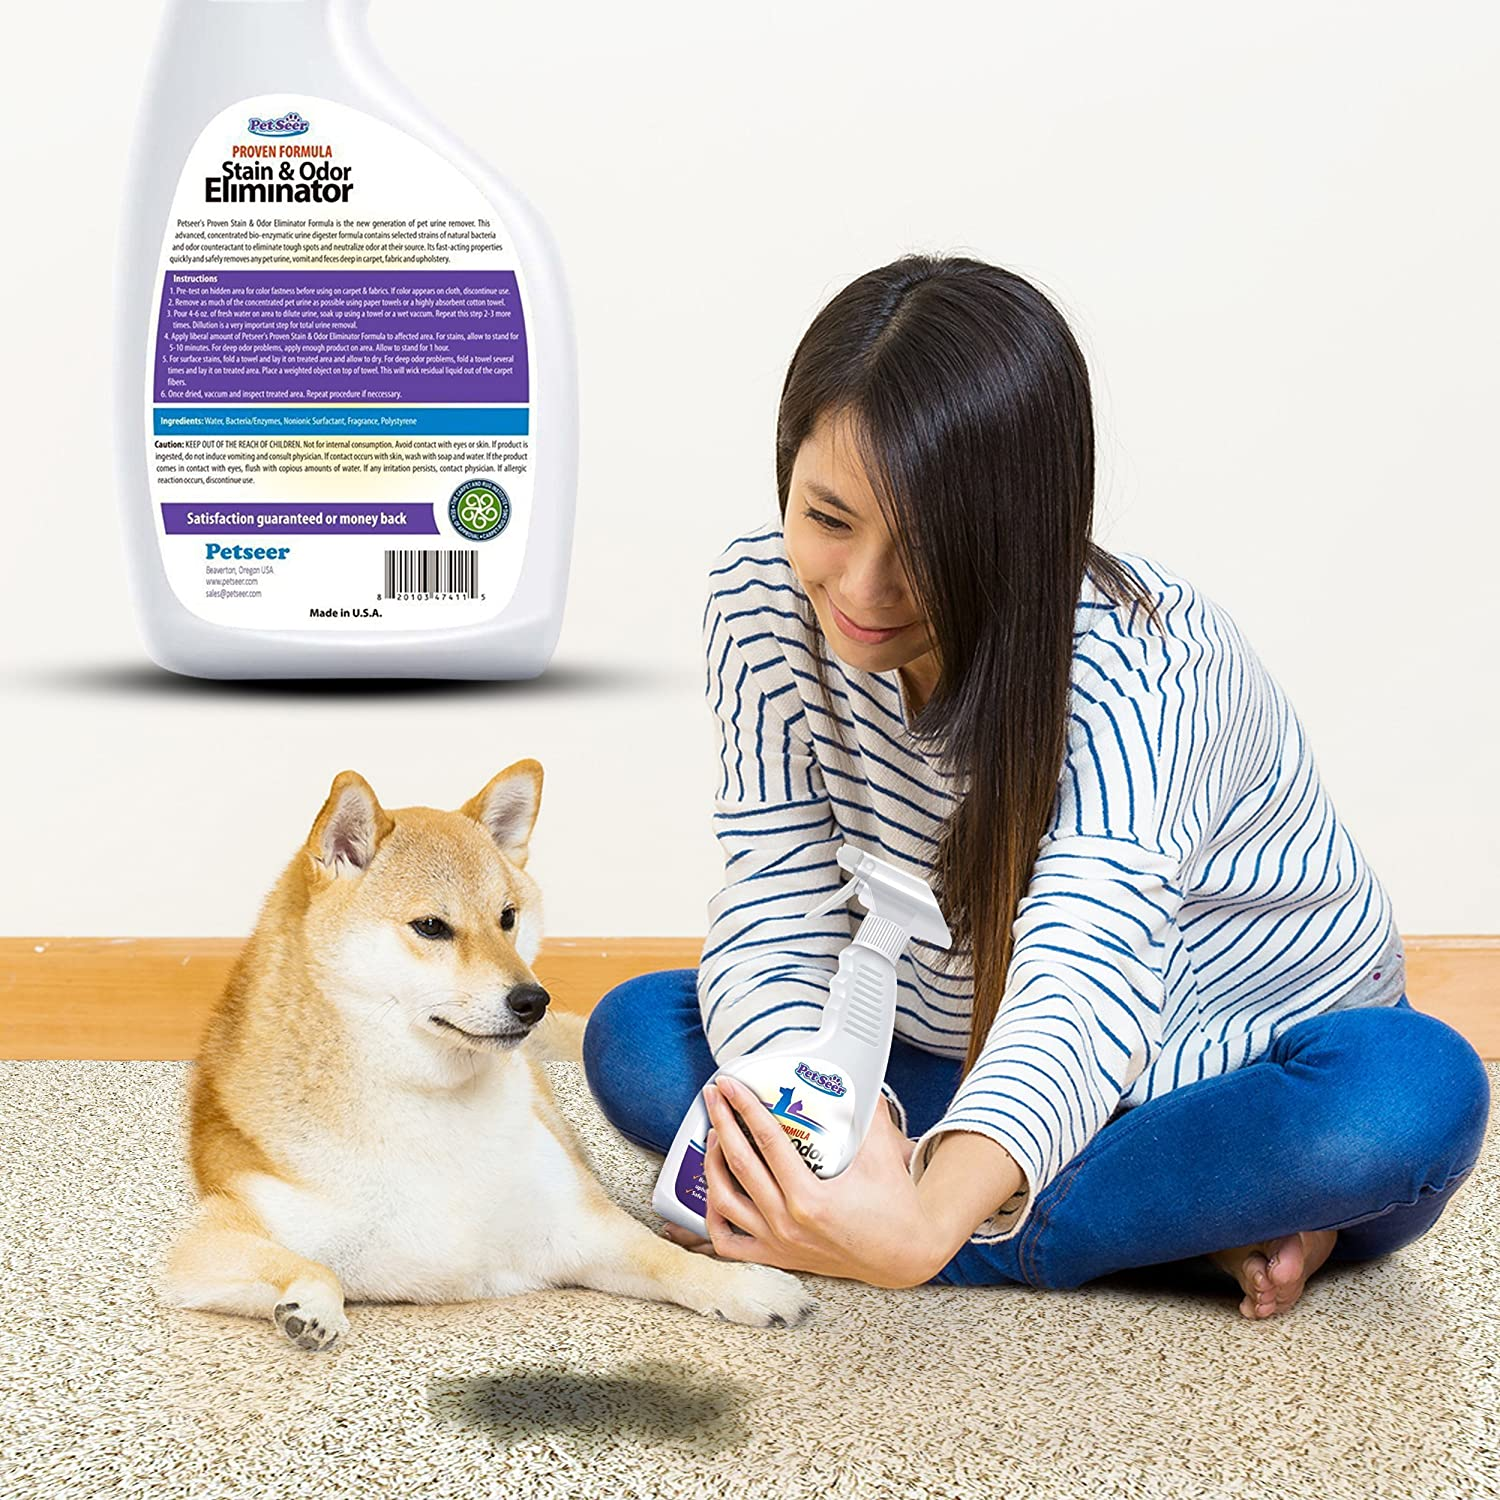 Amazon.com : Petseer Pet Odor Eliminator And Stain Remover, Stop Cats From  Peeing And Dog Re Marking, 32 Oz. : Pet Supplies